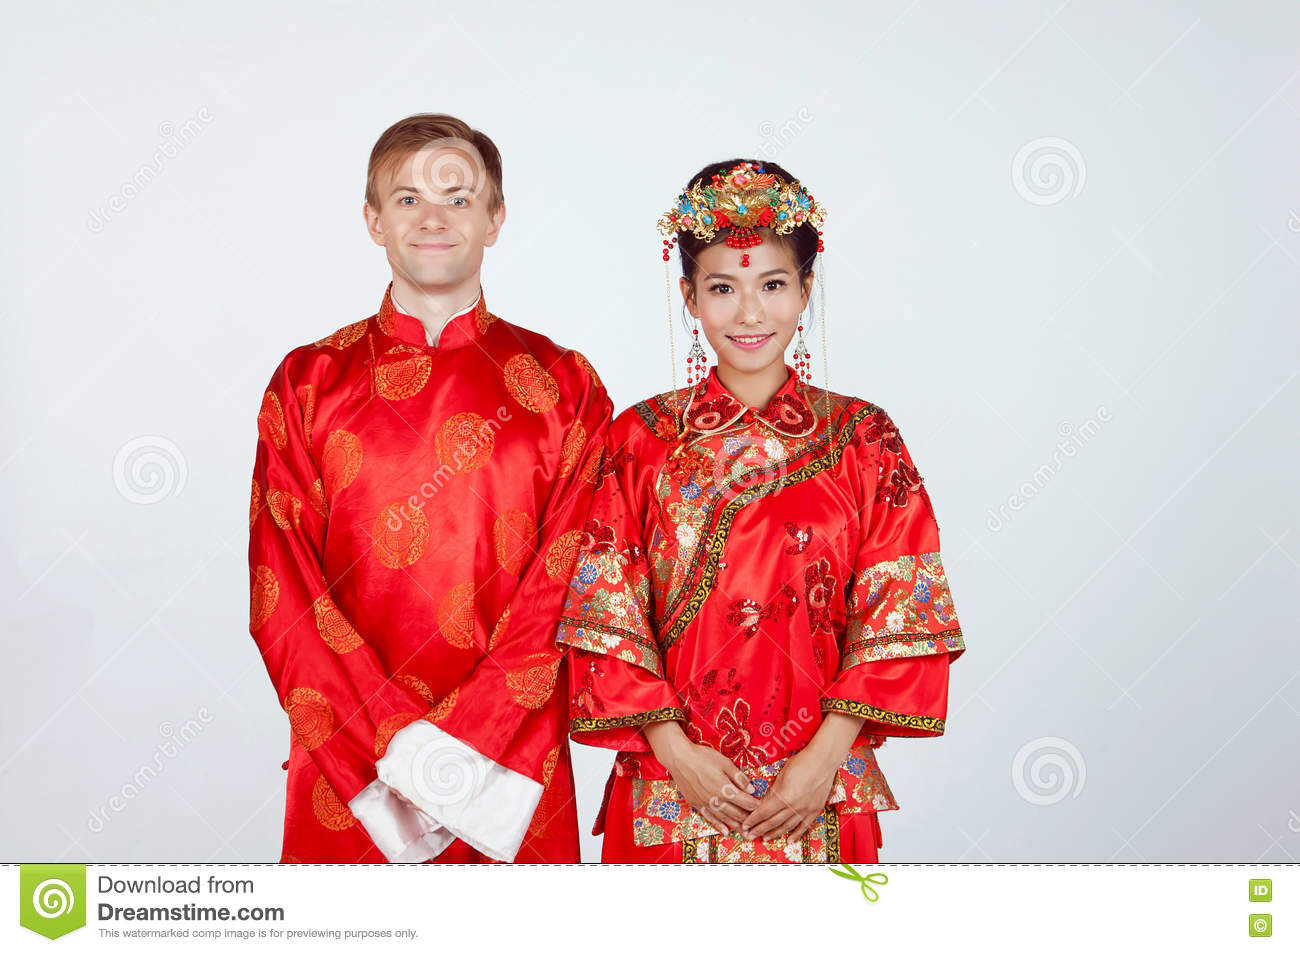 9b9248aba Mixed Race Bride and Groom in Studio wearing traditional Chinese wedding  outfits